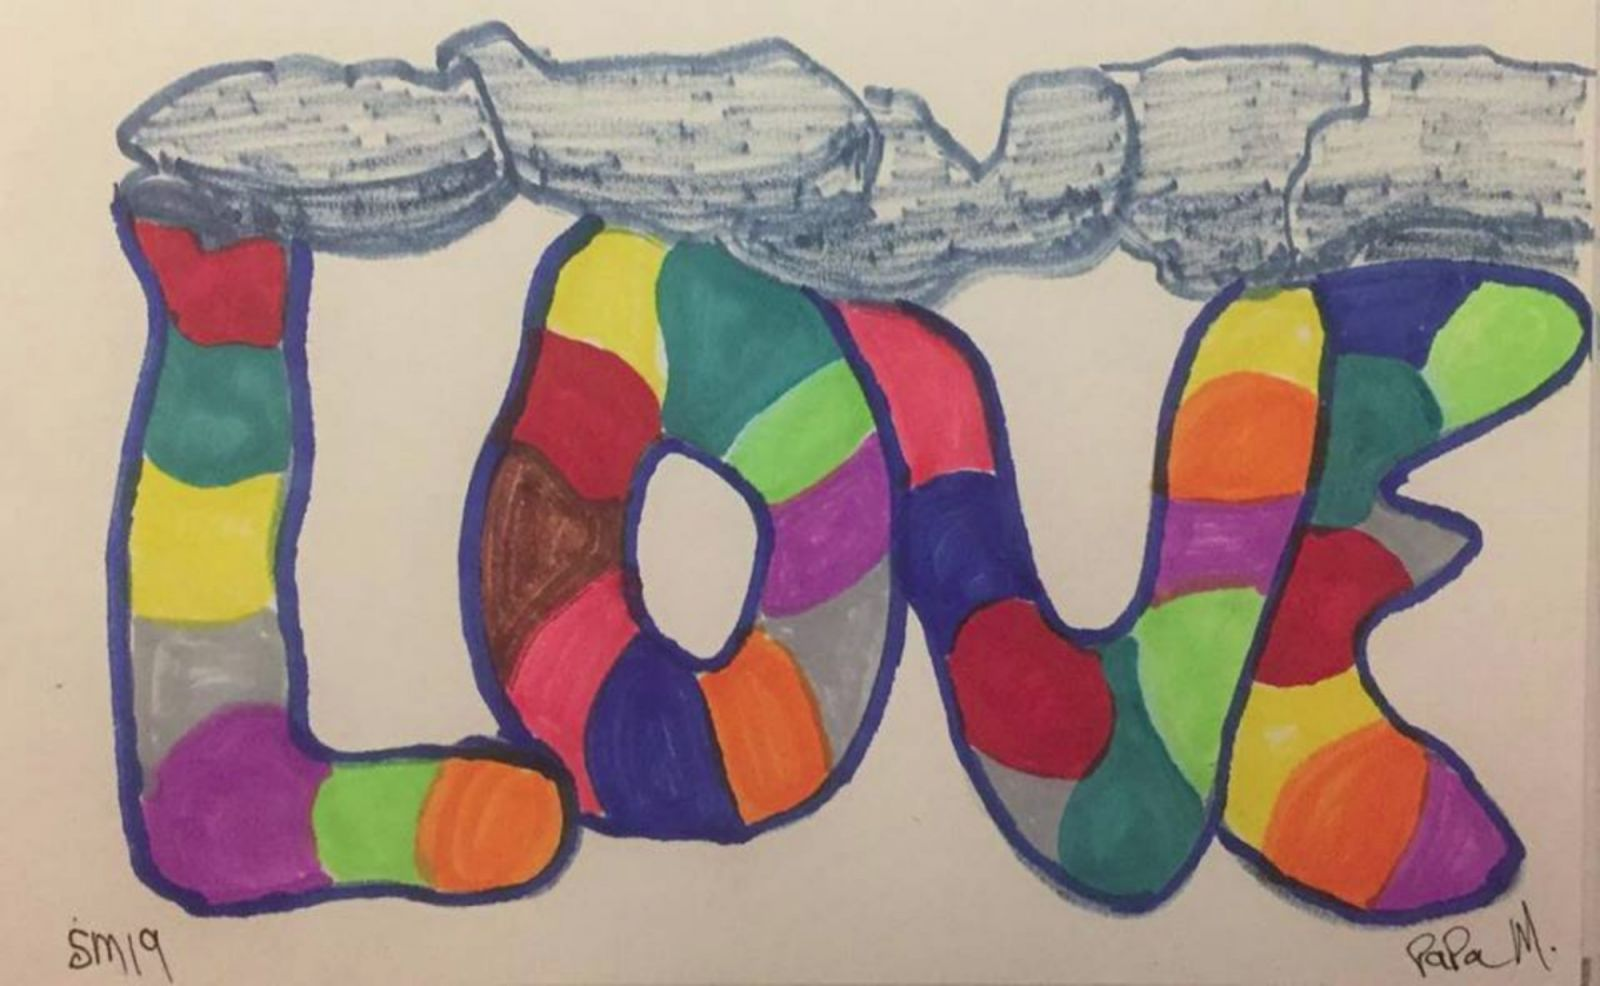 Love. 2019. Drawing. Markers on 5.5x8.5 inch paper. $25.00